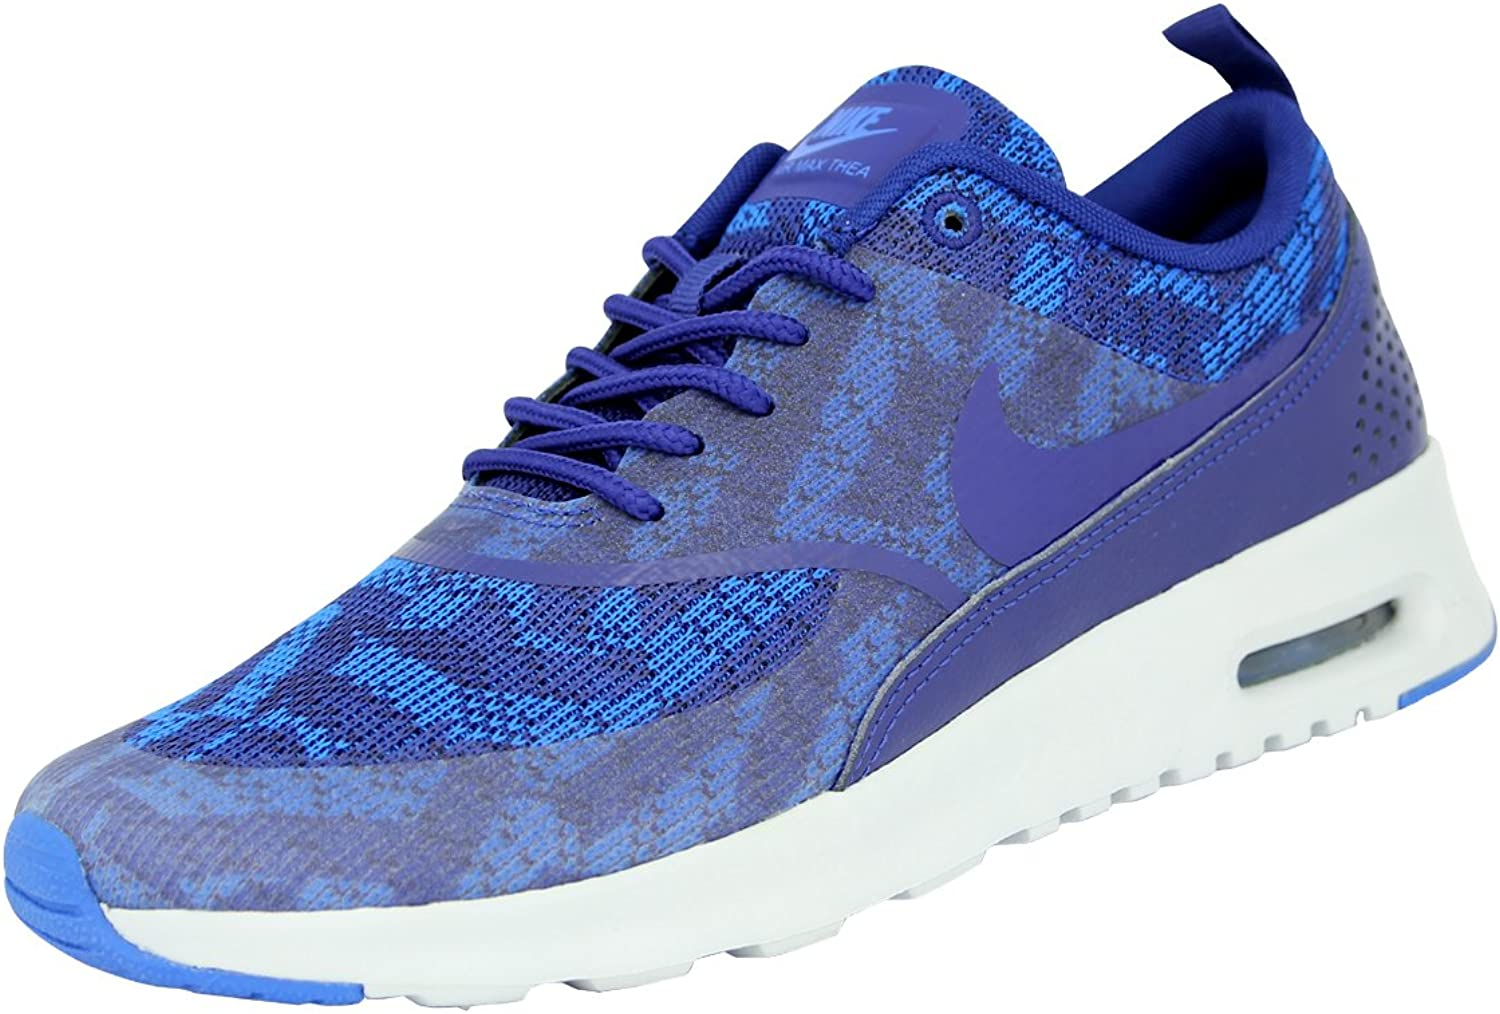 Nike Women's Air Max Thea Kjcrd Running shoes